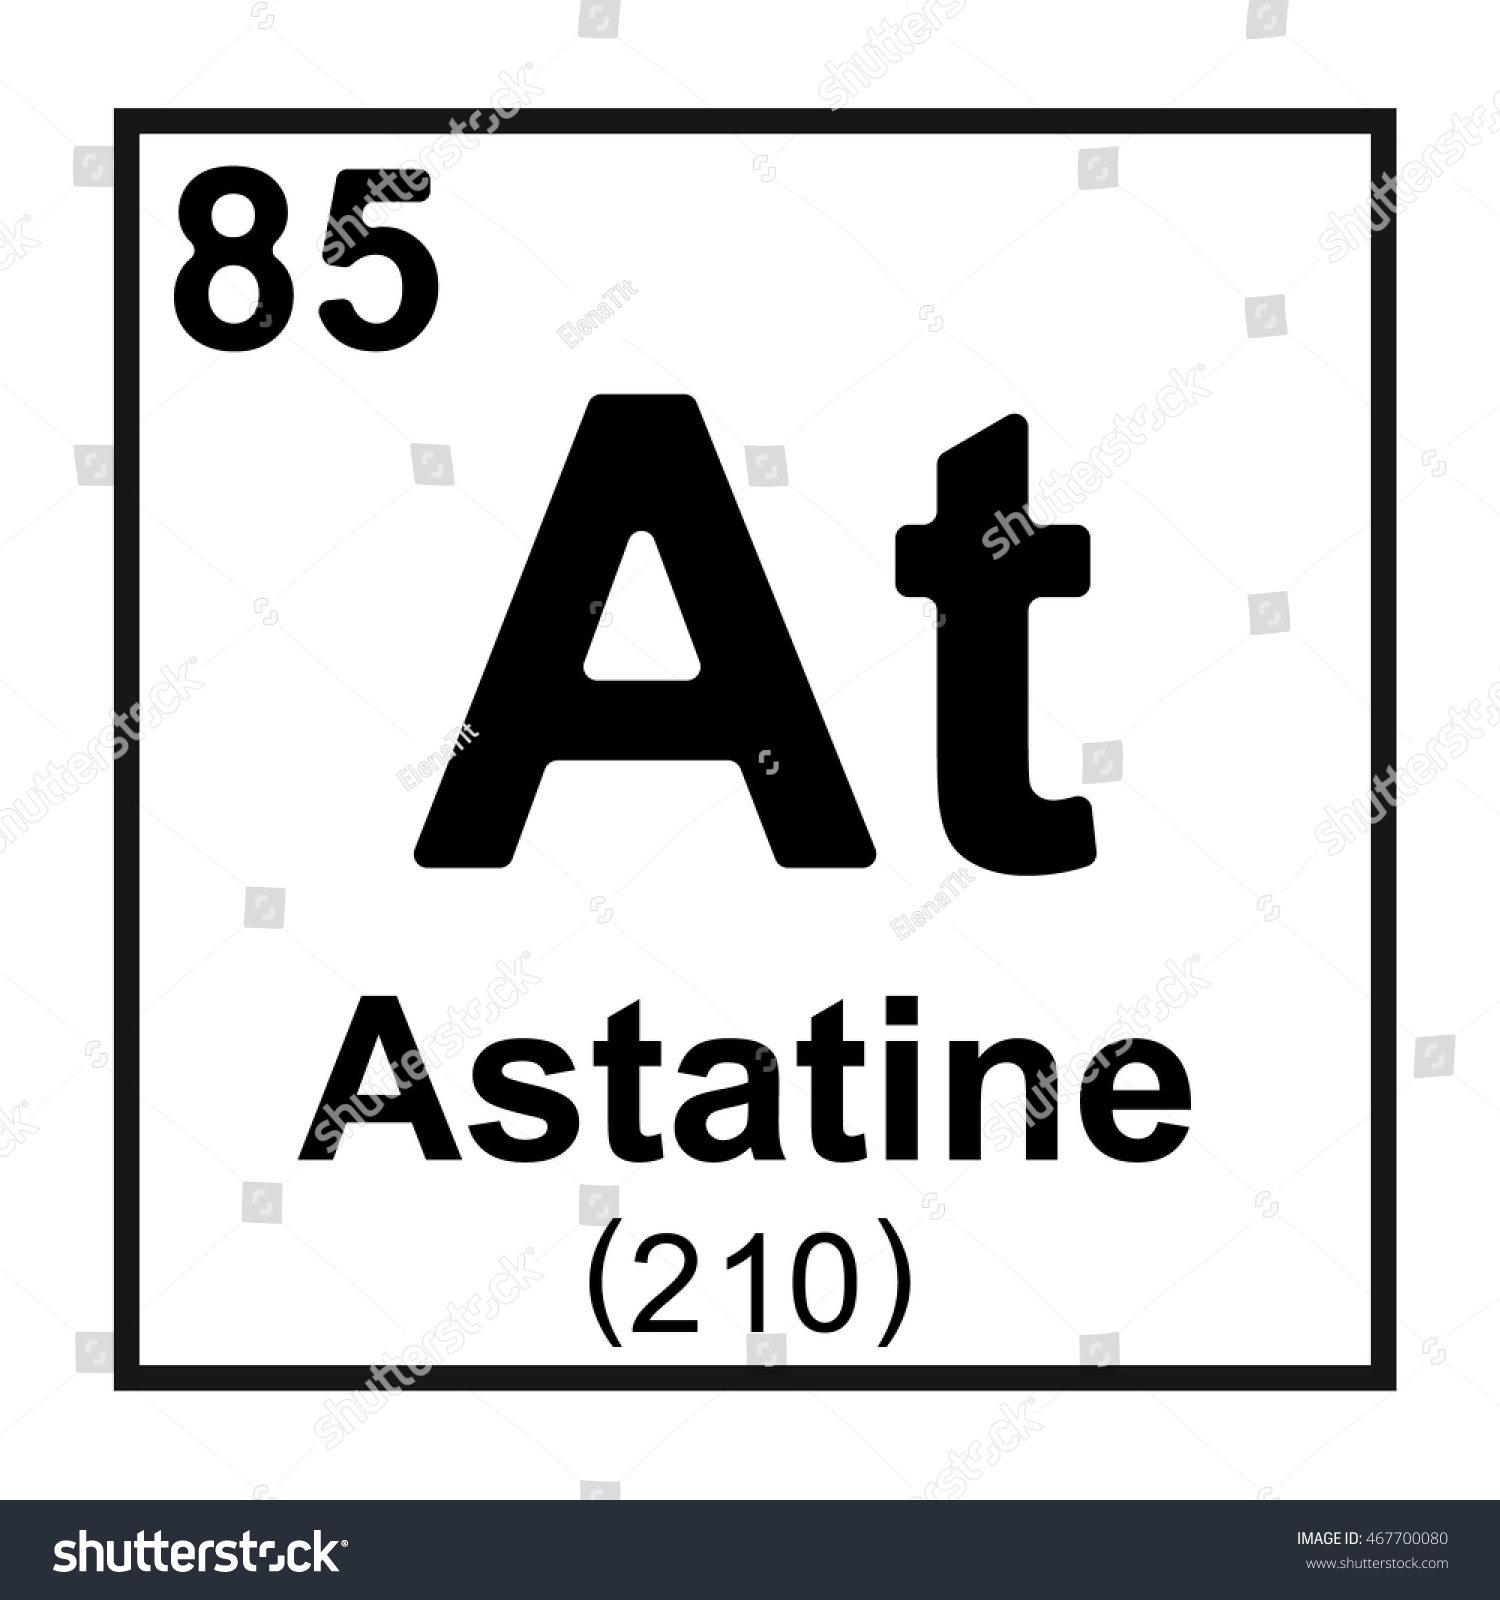 Periodic table element astatine stock vector 467700080 shutterstock periodic table element astatine gamestrikefo Image collections